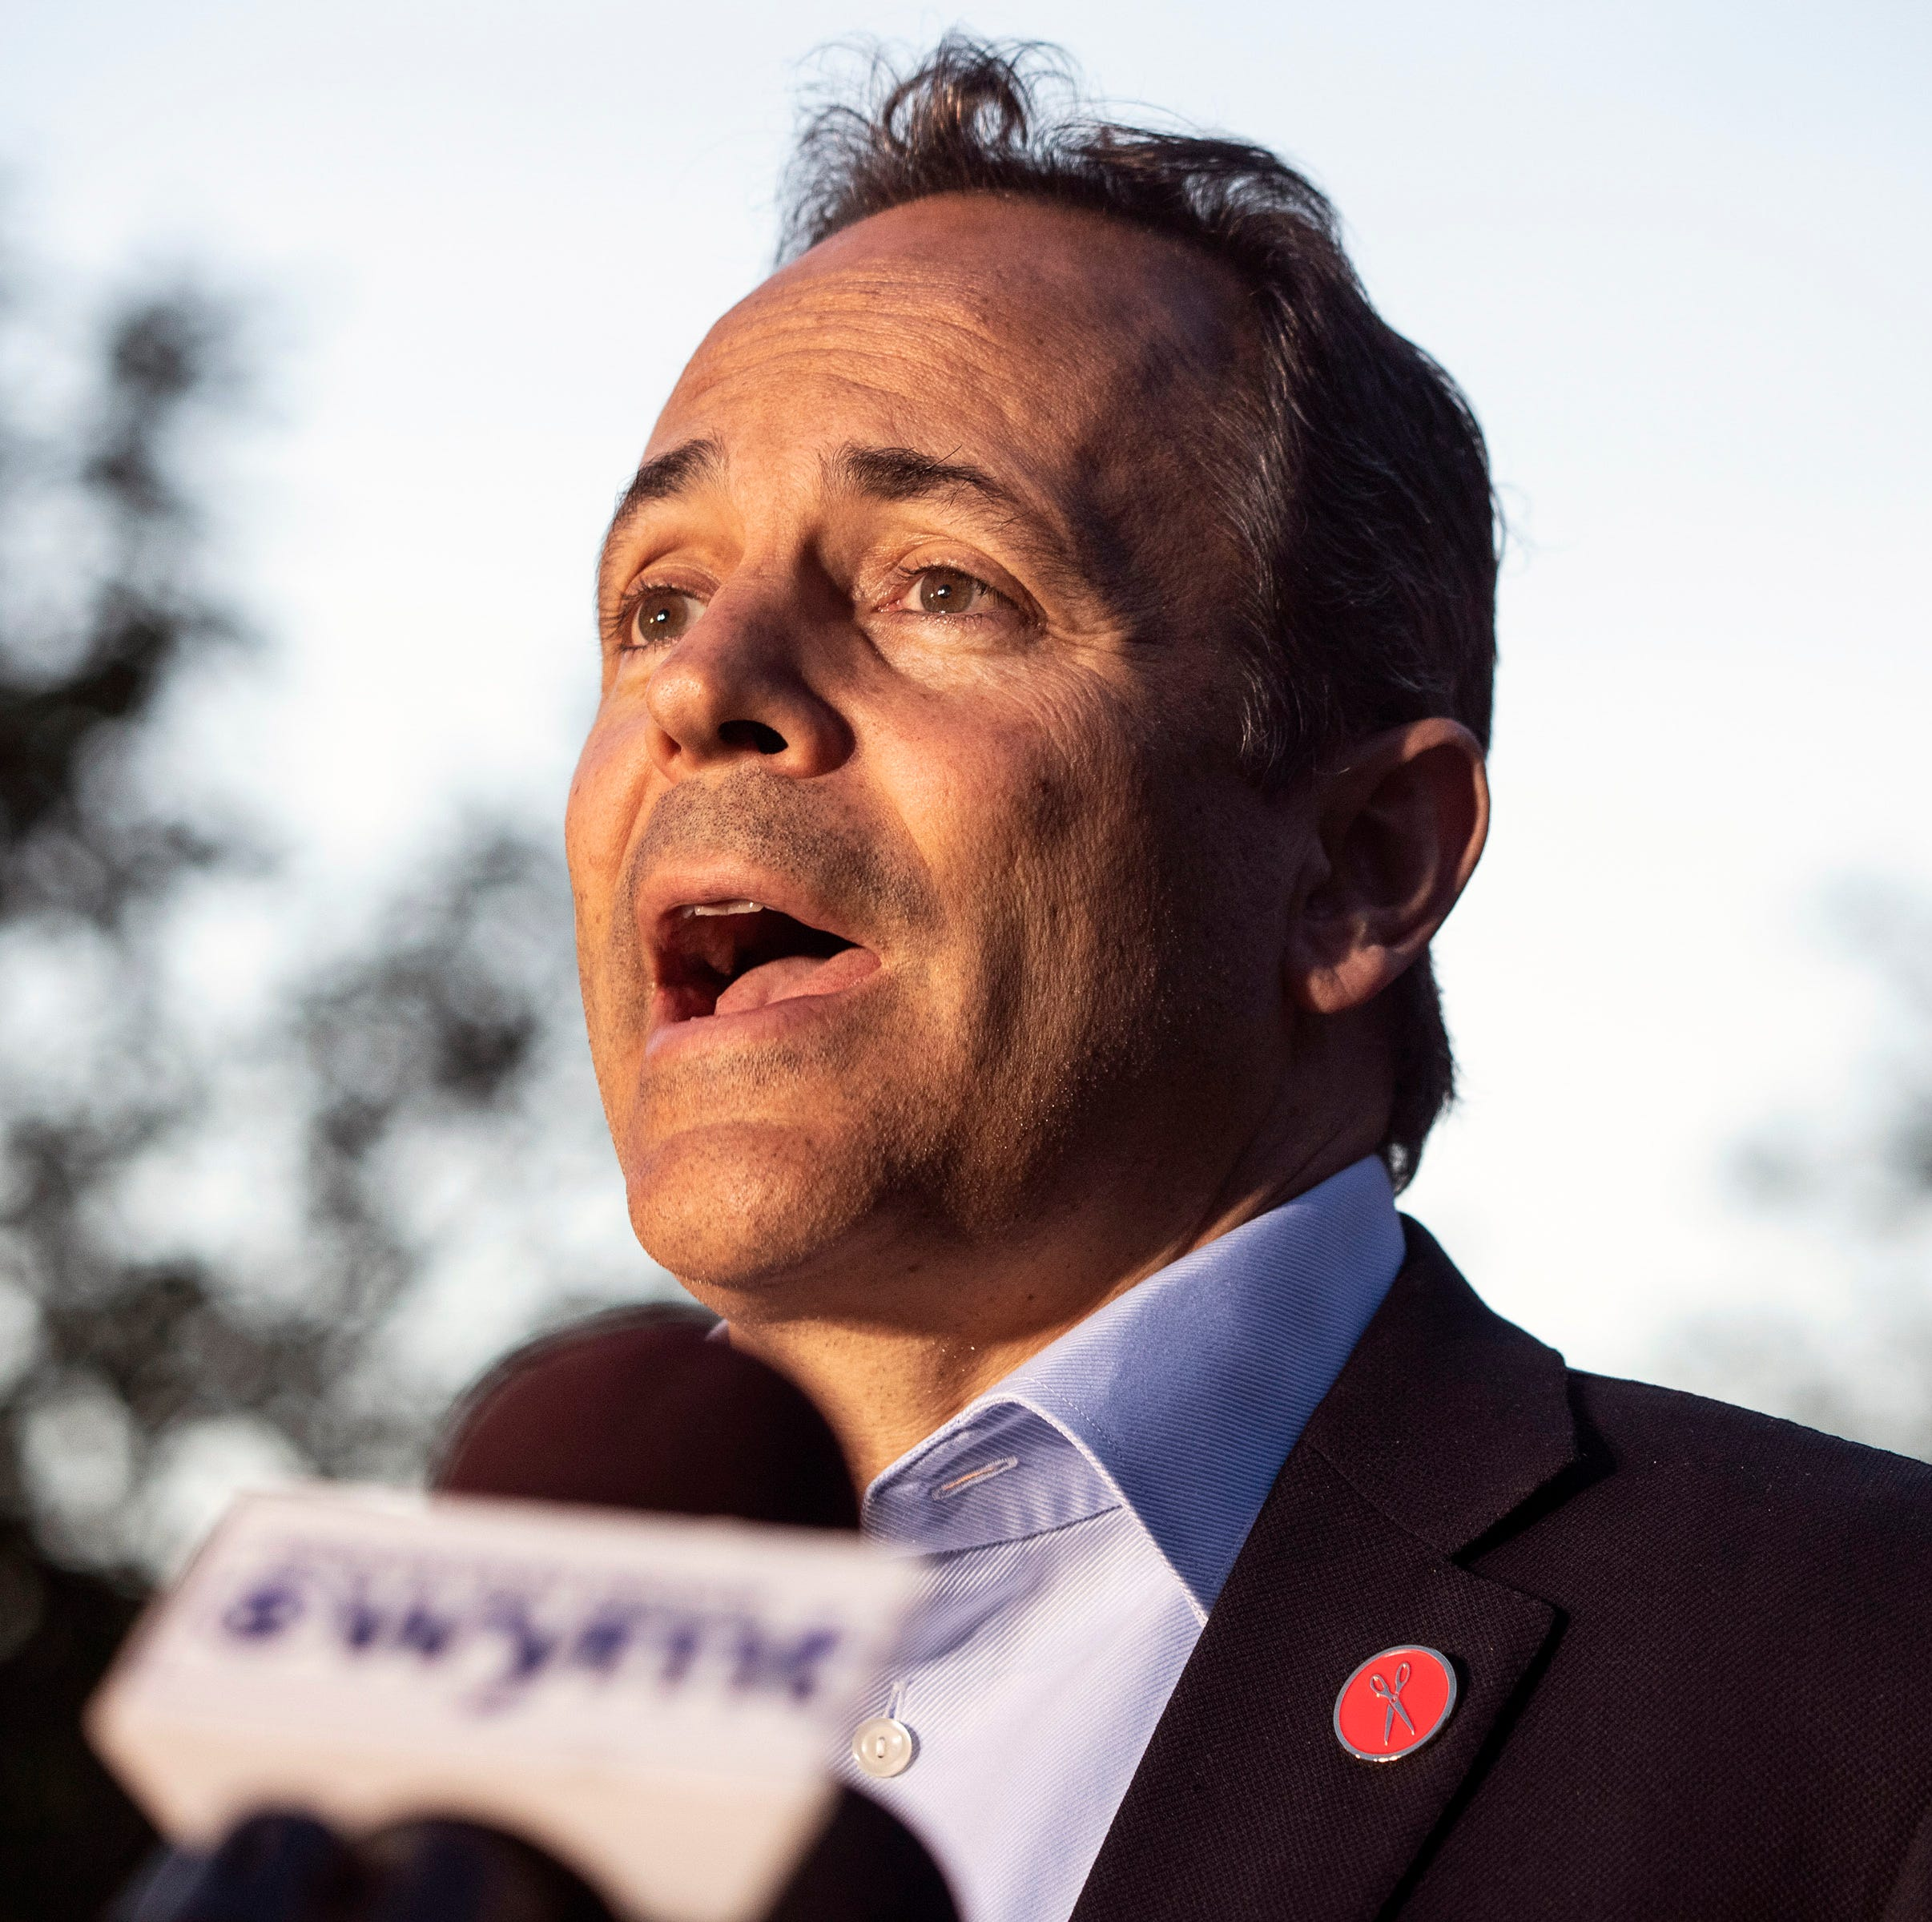 Gov. Matt Bevin ekes out a hard-fought win in the Kentucky Republican primary